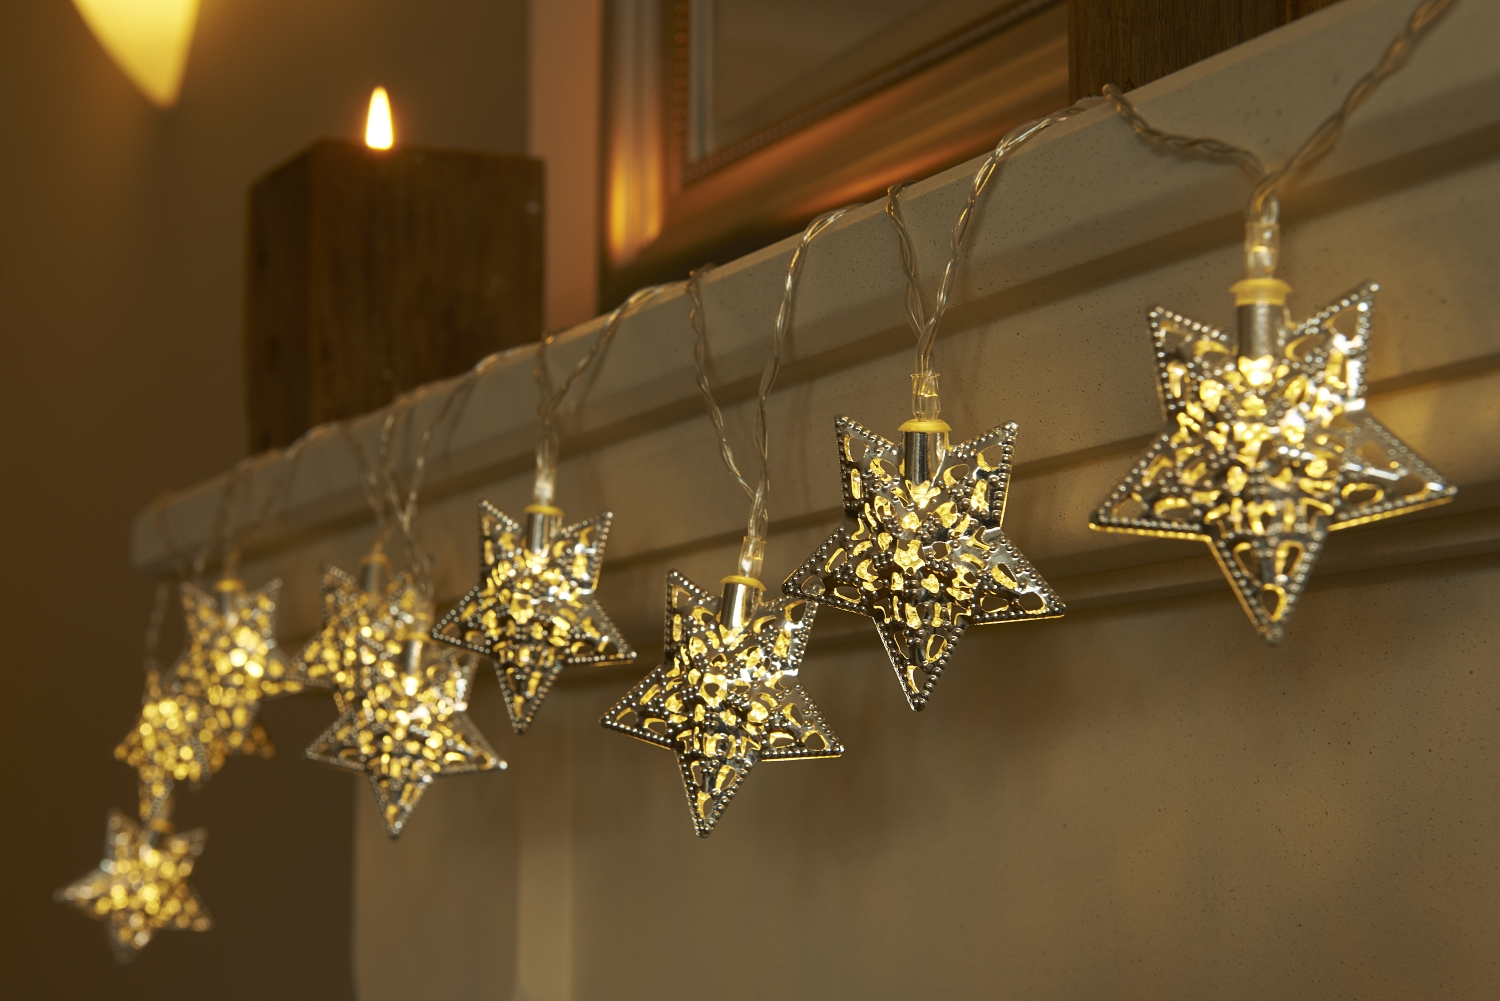 Set of 12 Battery Operated Moroccan String Lights - STARS - Auraglow LED Lighting